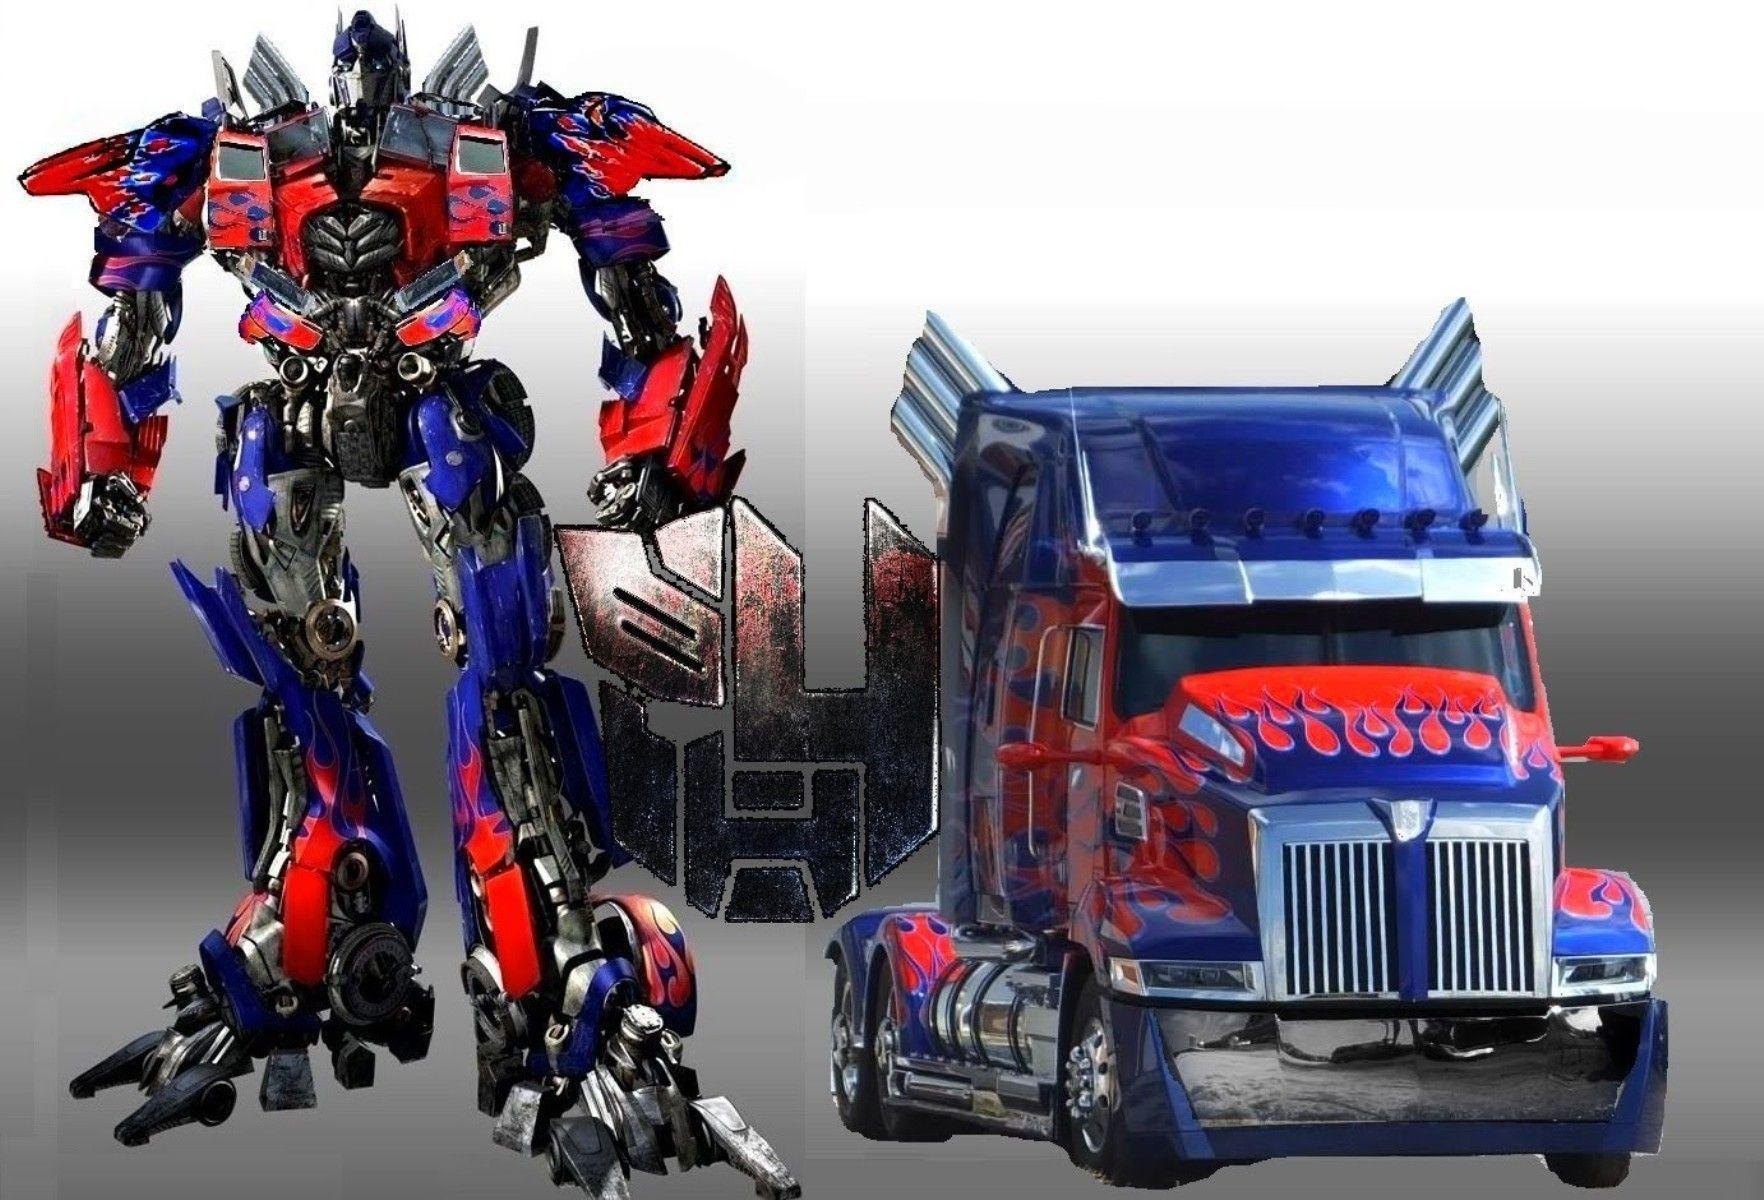 optimus prime wallpaper download - photo #16